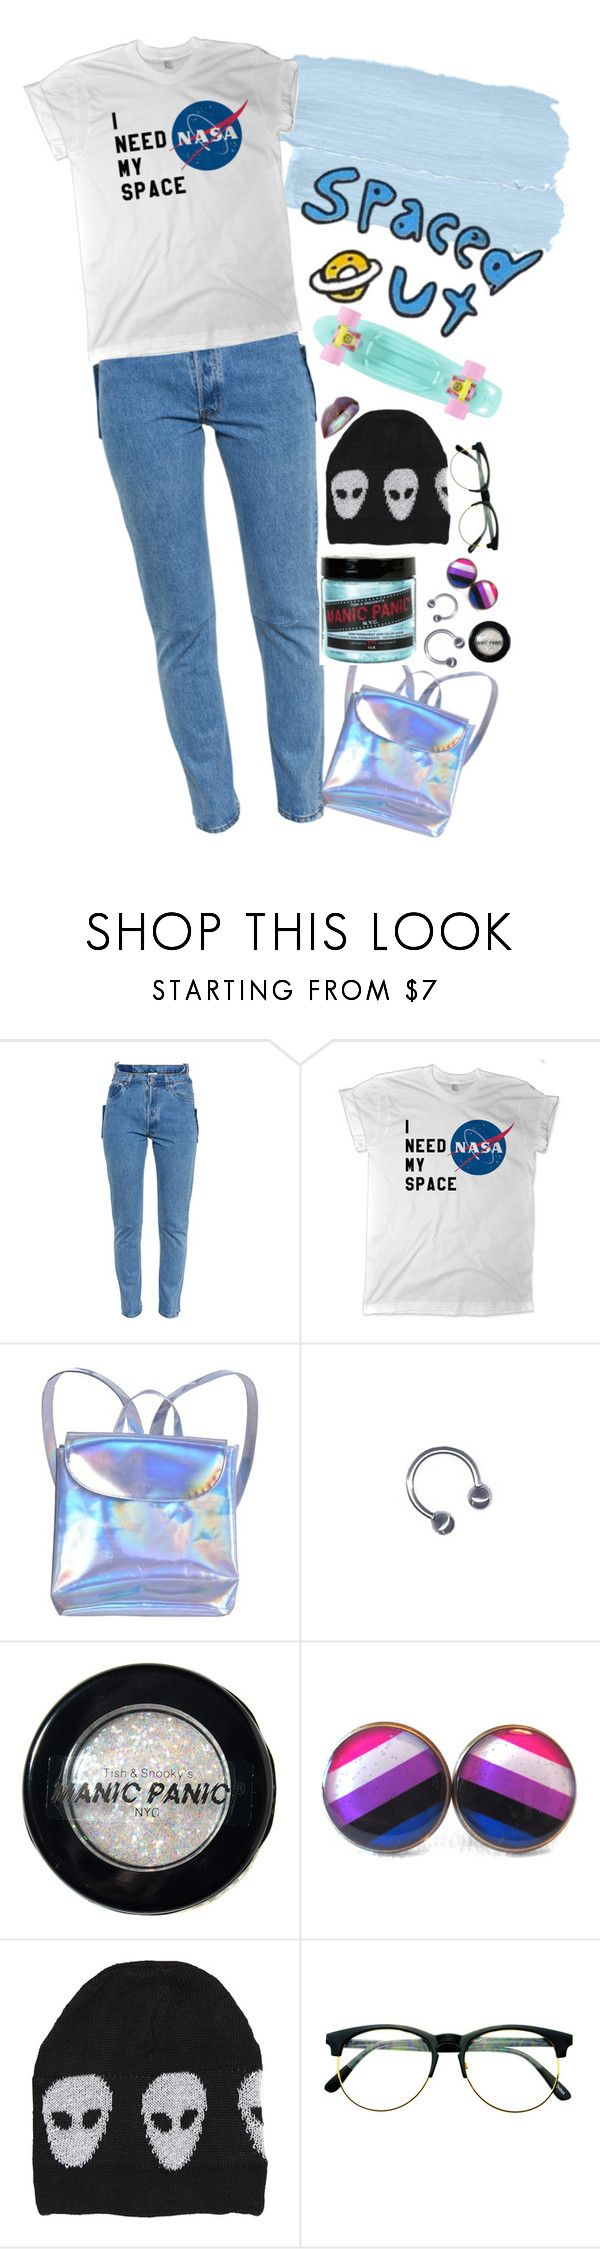 """""""spaced out!!"""" by tokyofoool ❤ liked on Polyvore featuring Vetements, Manic Panic NYC, Evil Twin and Retrò"""